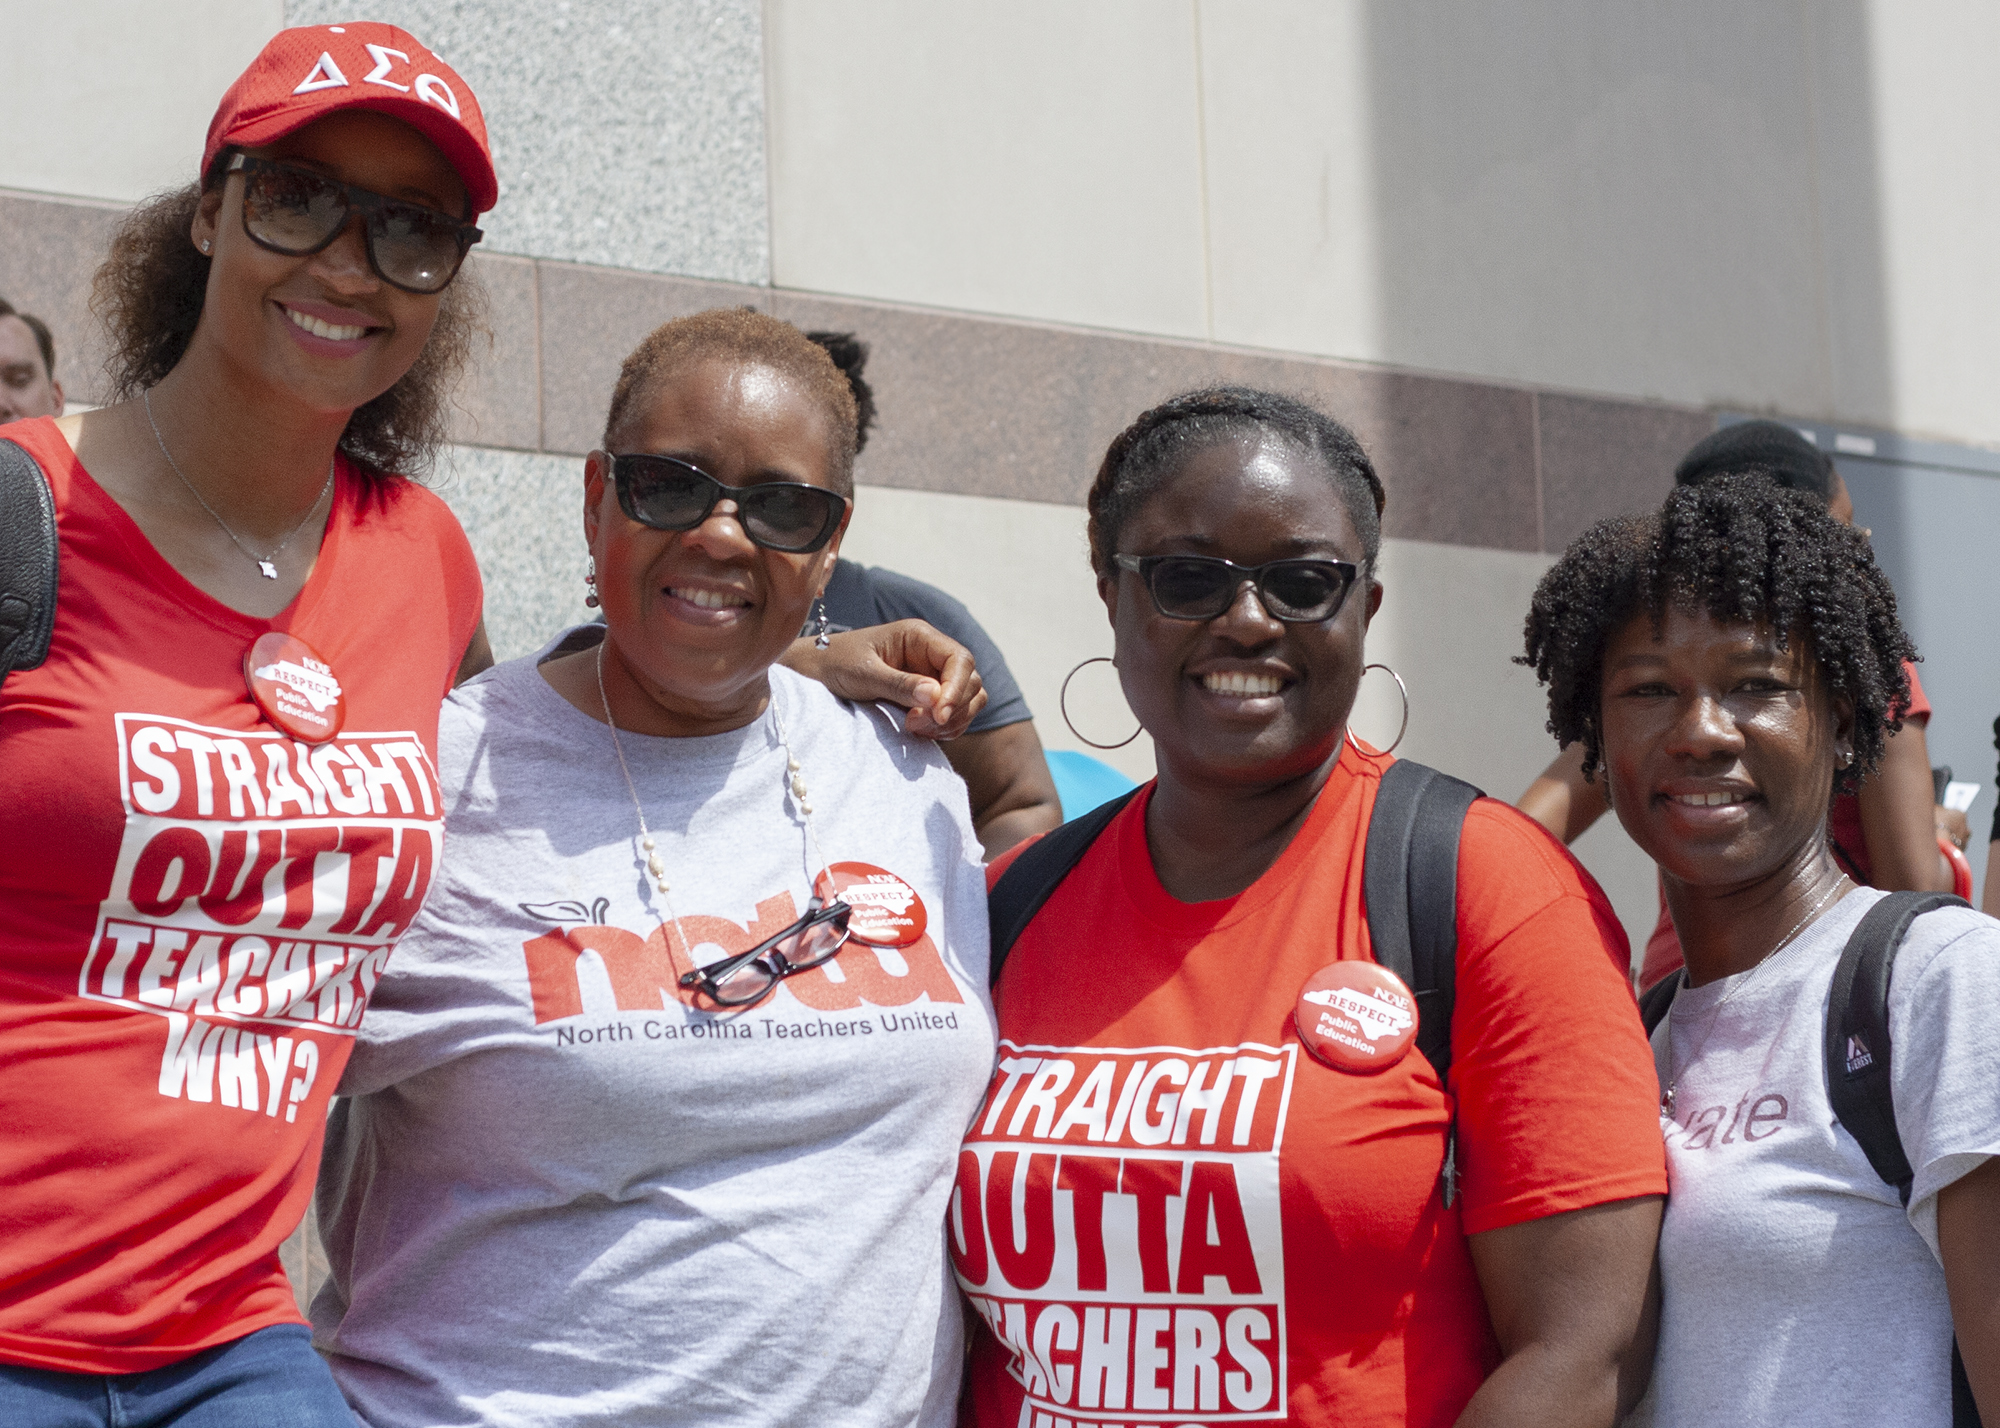 Jolandra, Djnna, Kim and Xiomara attended the Rally for Respect together on May 16.